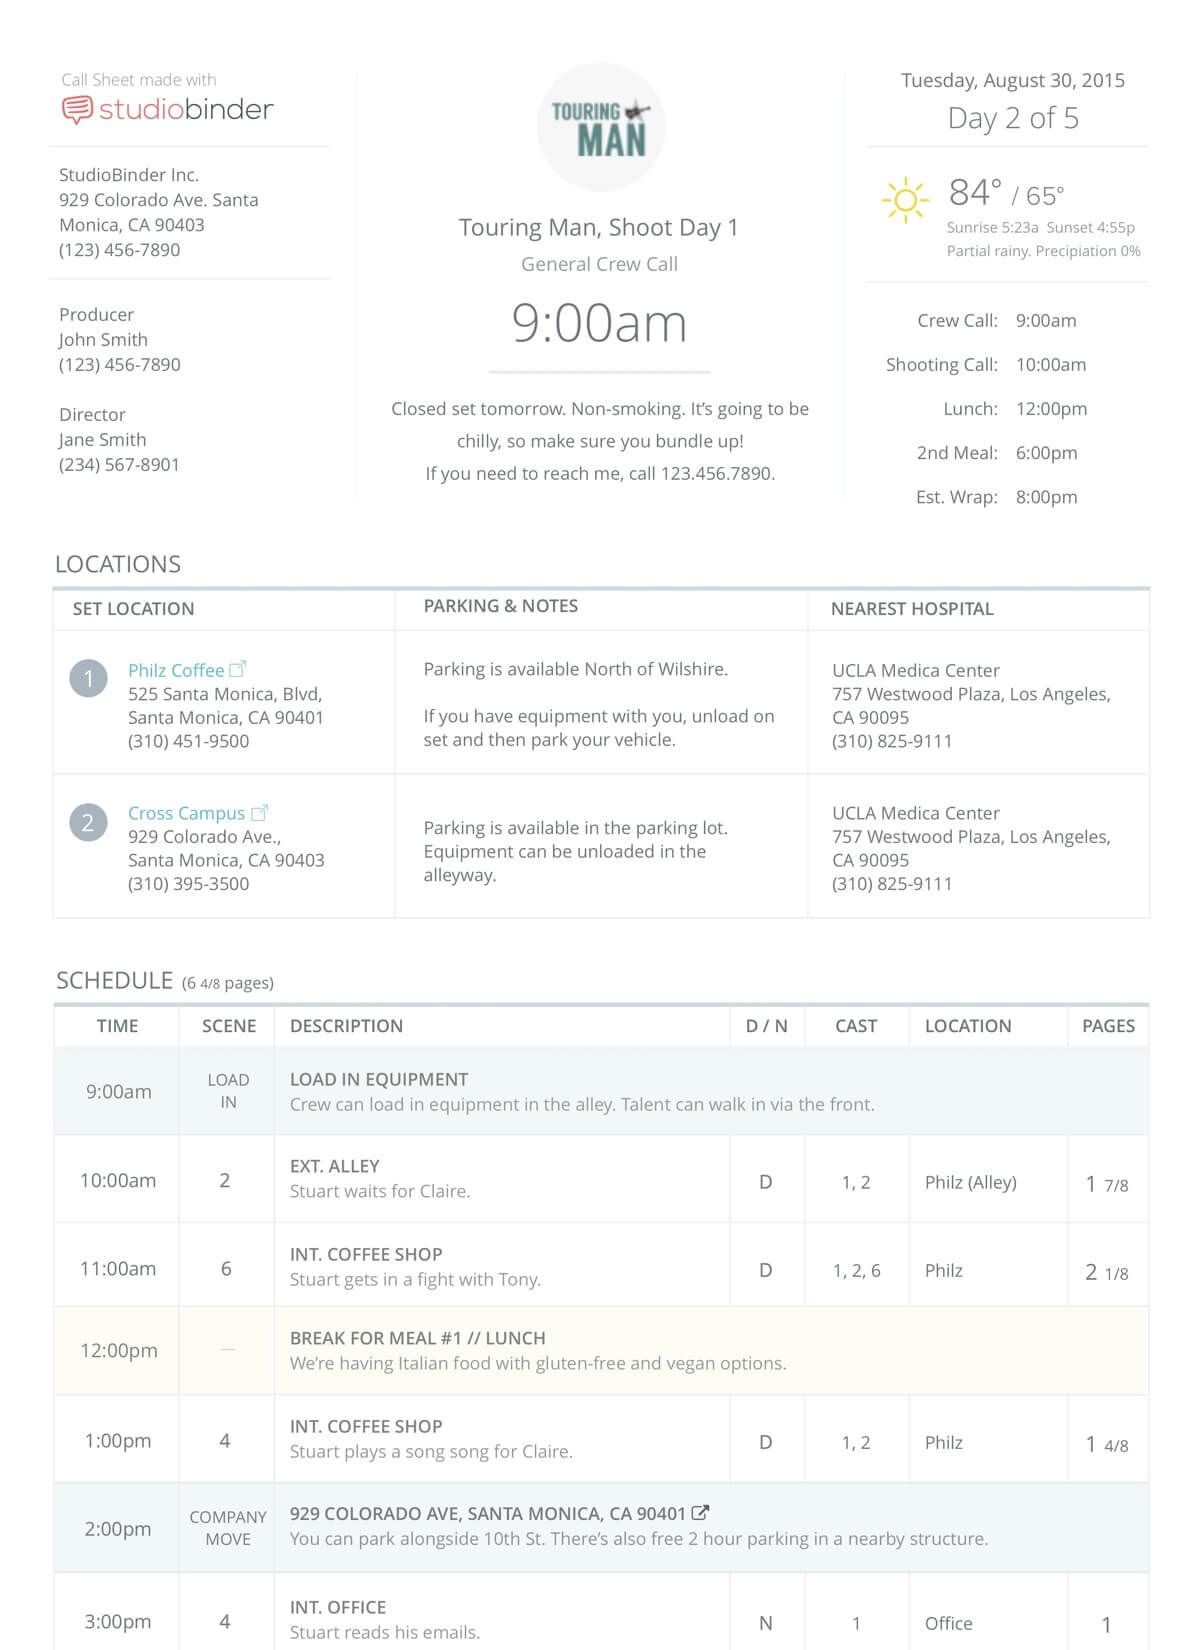 009 Stirring Film Call Sheet Template Image  Movie Excel Example Google DocFull